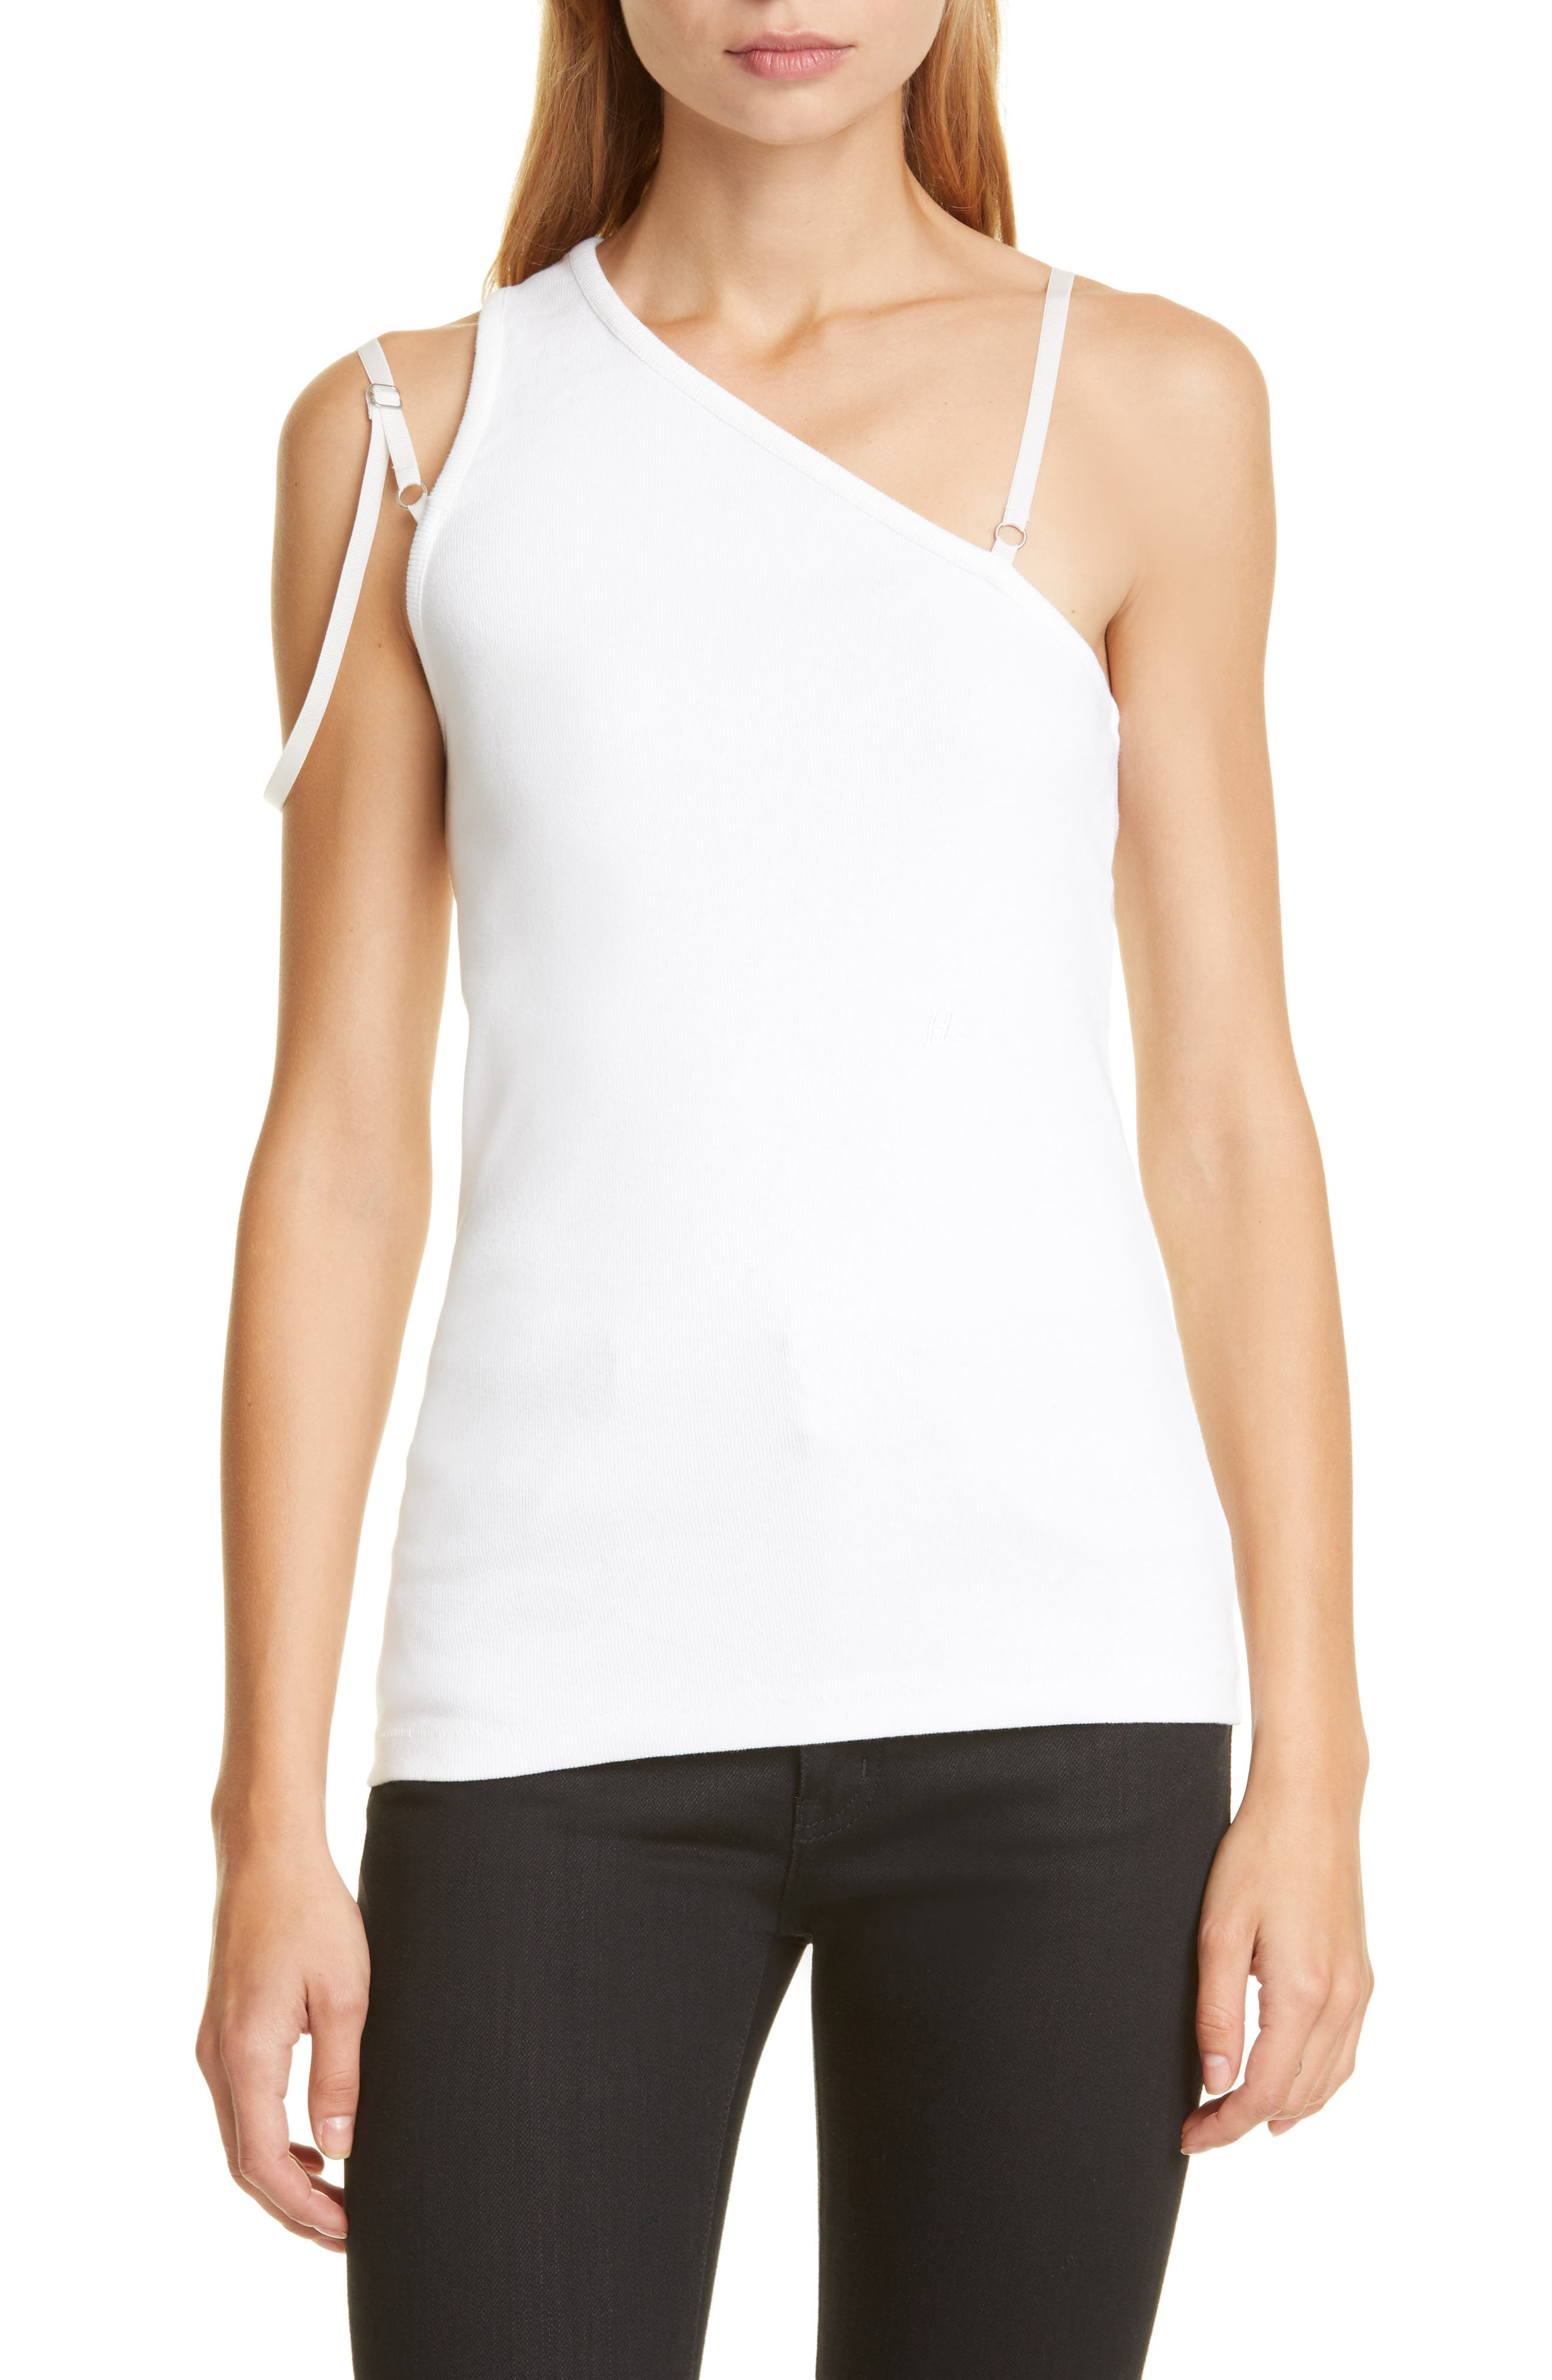 Helmut Lang Tops Femme One-Shoulder Top